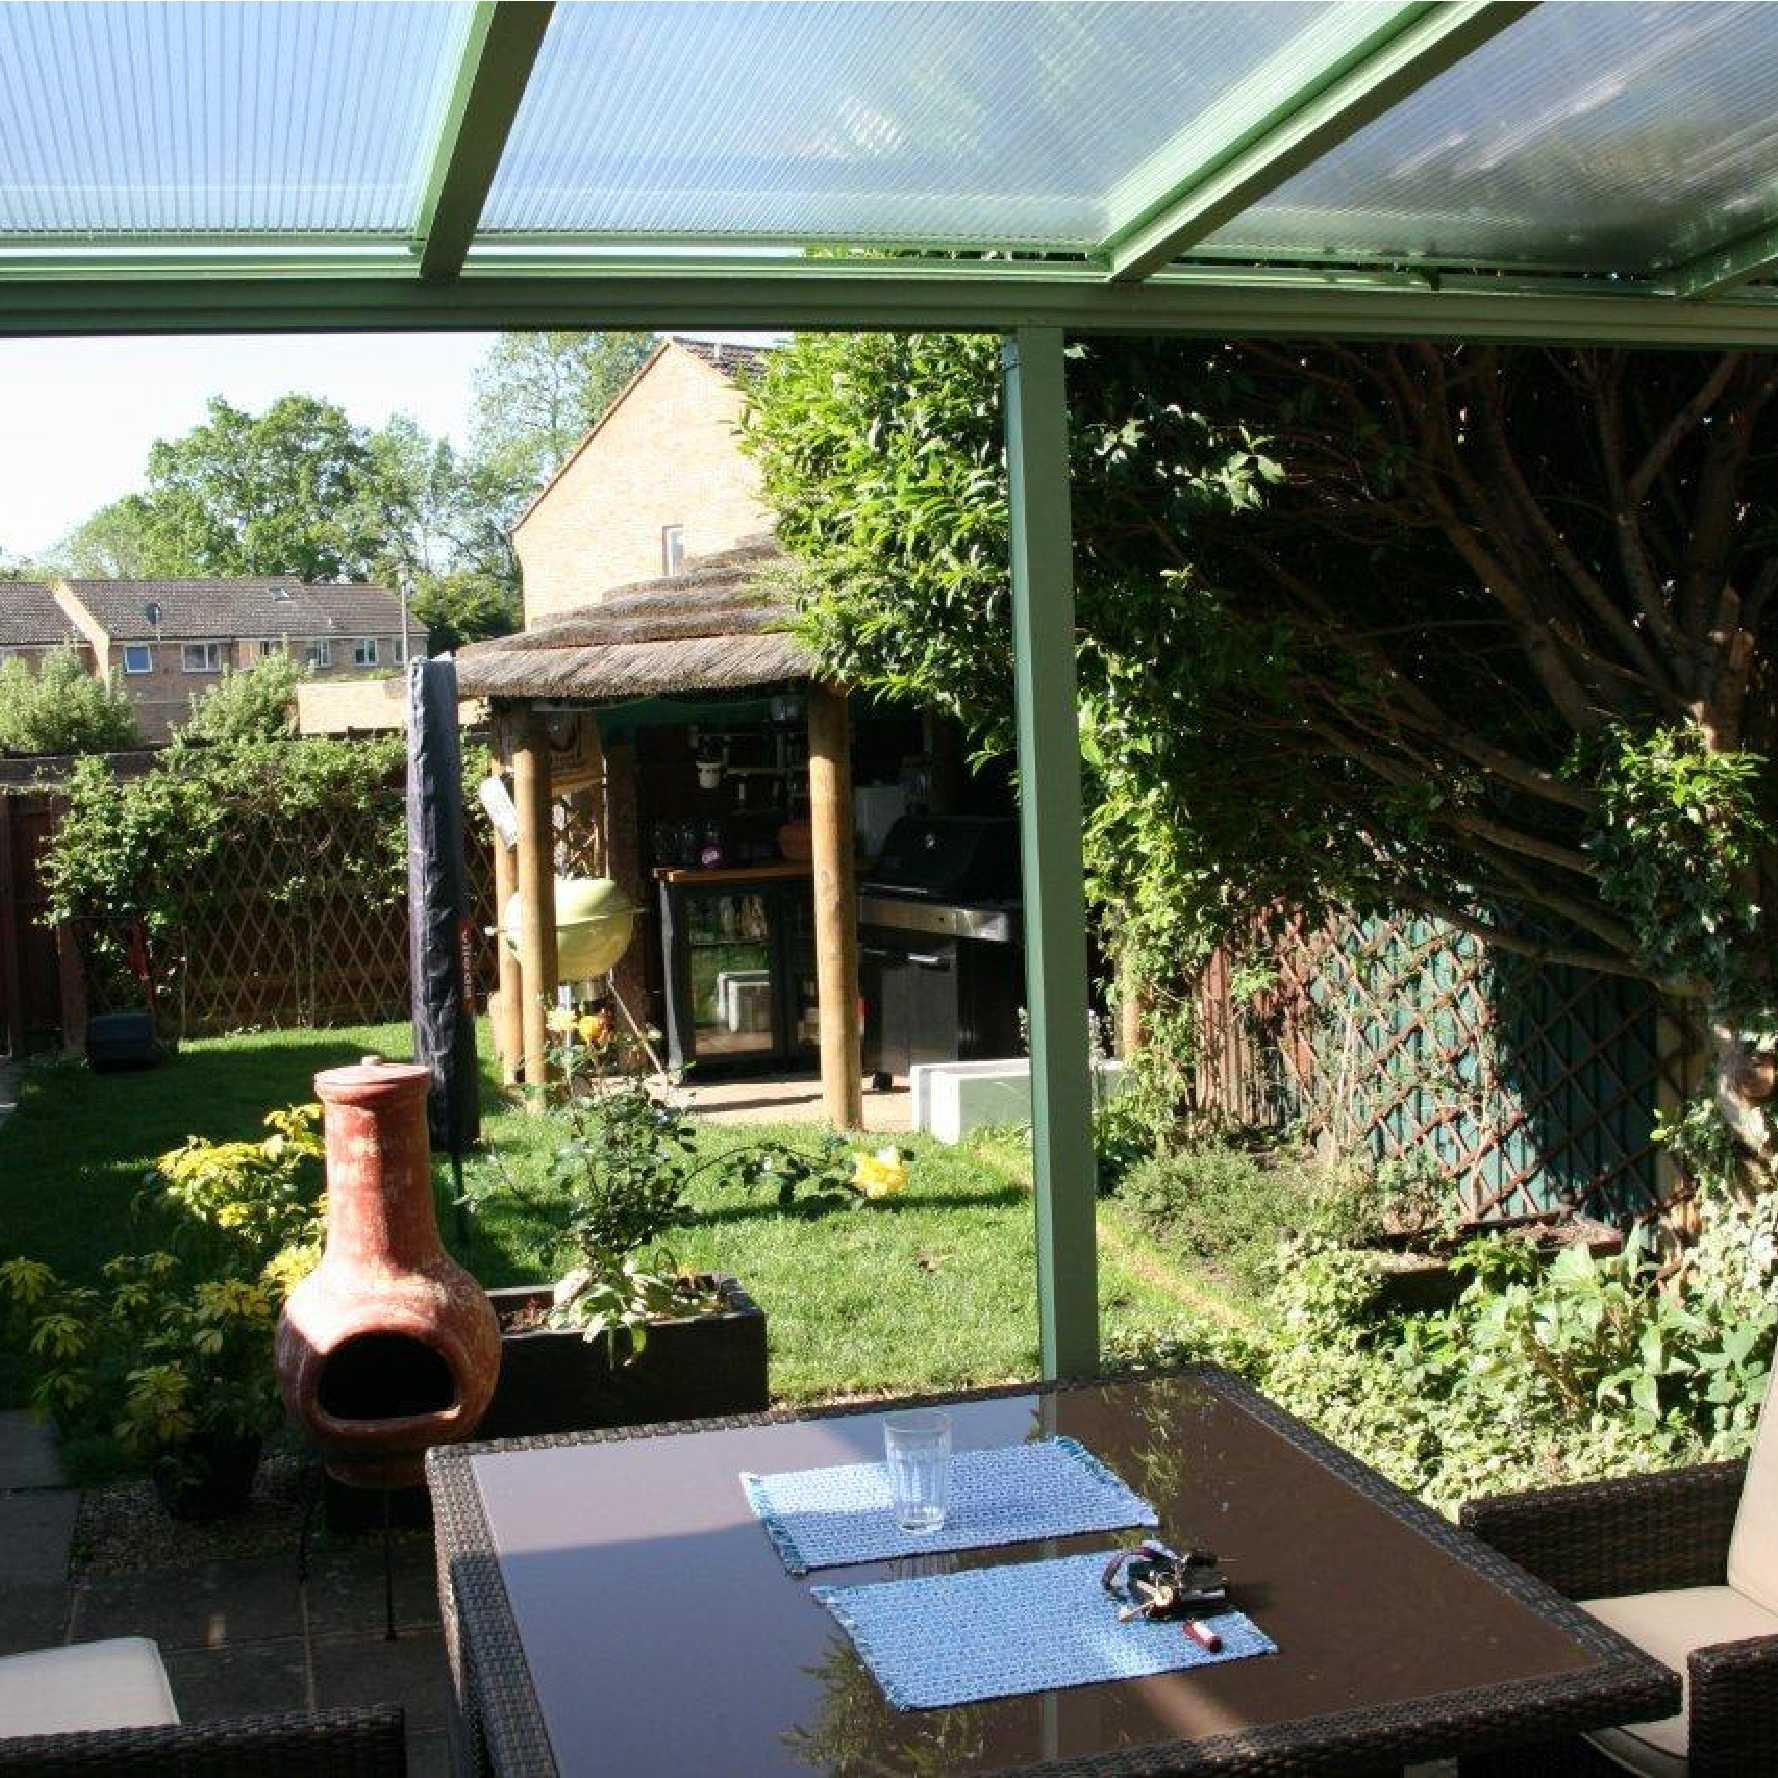 Affordable Omega Smart White Lean-To Canopy with 16mm Polycarbonate Glazing - 8.4m (W) x 4.0m (P), (4) Supporting Posts